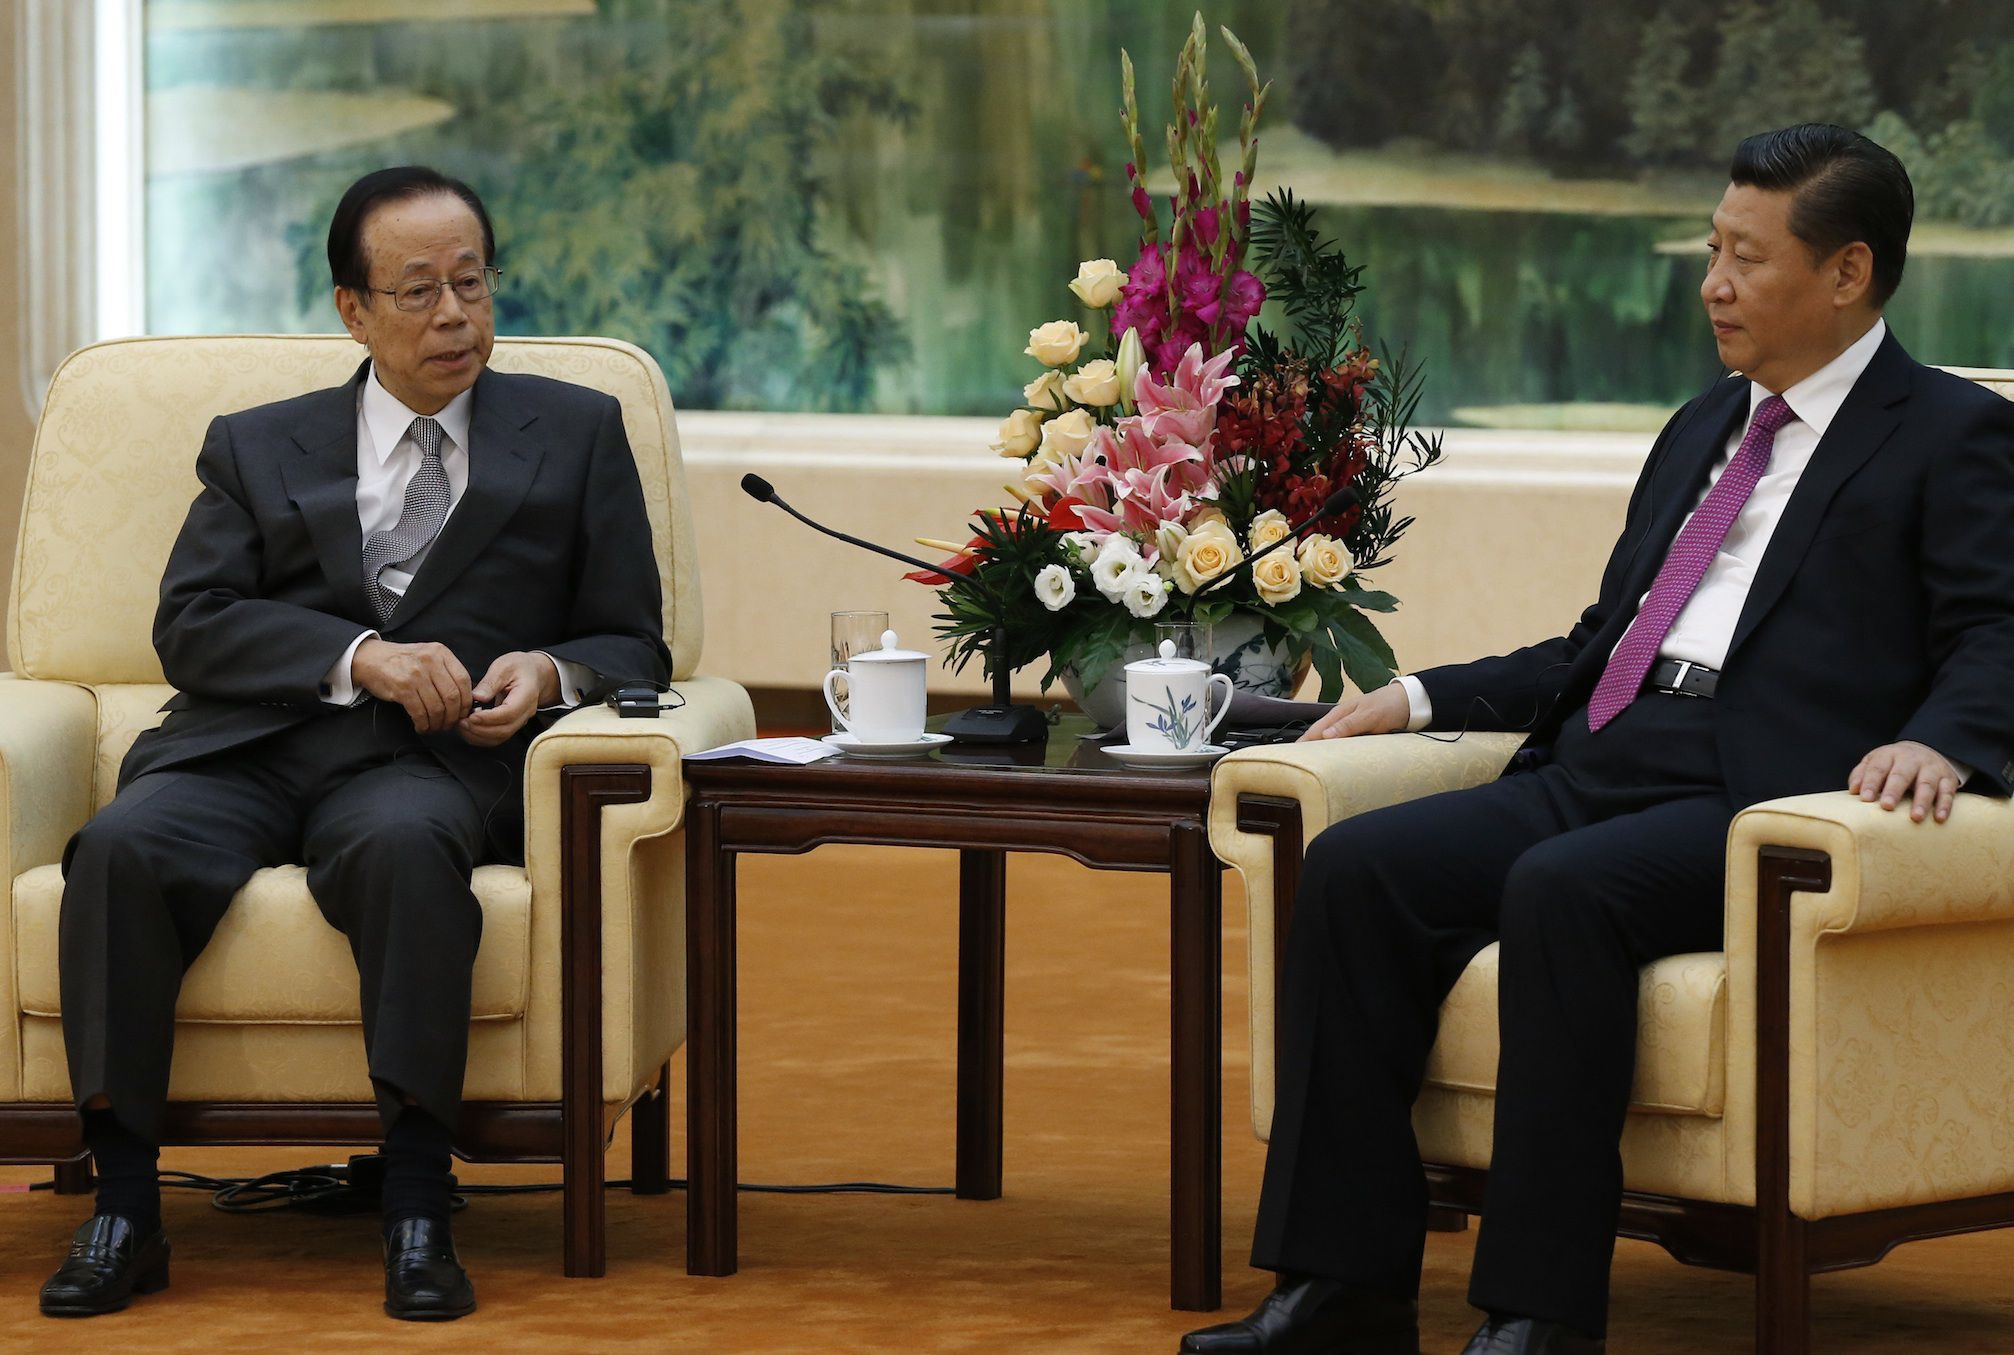 Former Japanese Prime Minister Yasuo Fukuda (L), chairman of the Boao Forum for Asia, meets Chinese President Xi Jinping at the Great Hall of the People in Beijing October 29, 2014.